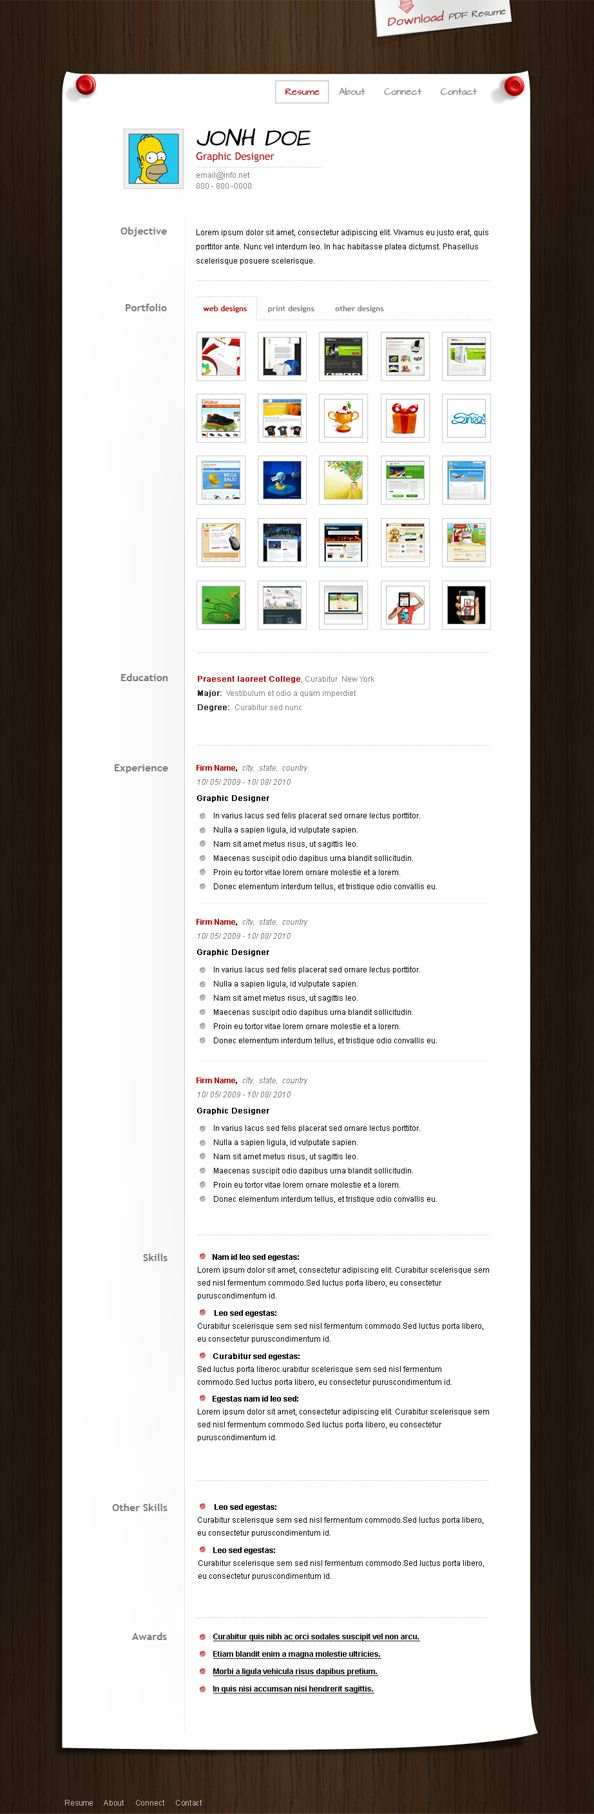 Resume Design A Resume Online best 25 online cv template ideas on pinterest nice 15 free resume templates psd professionally designed templates